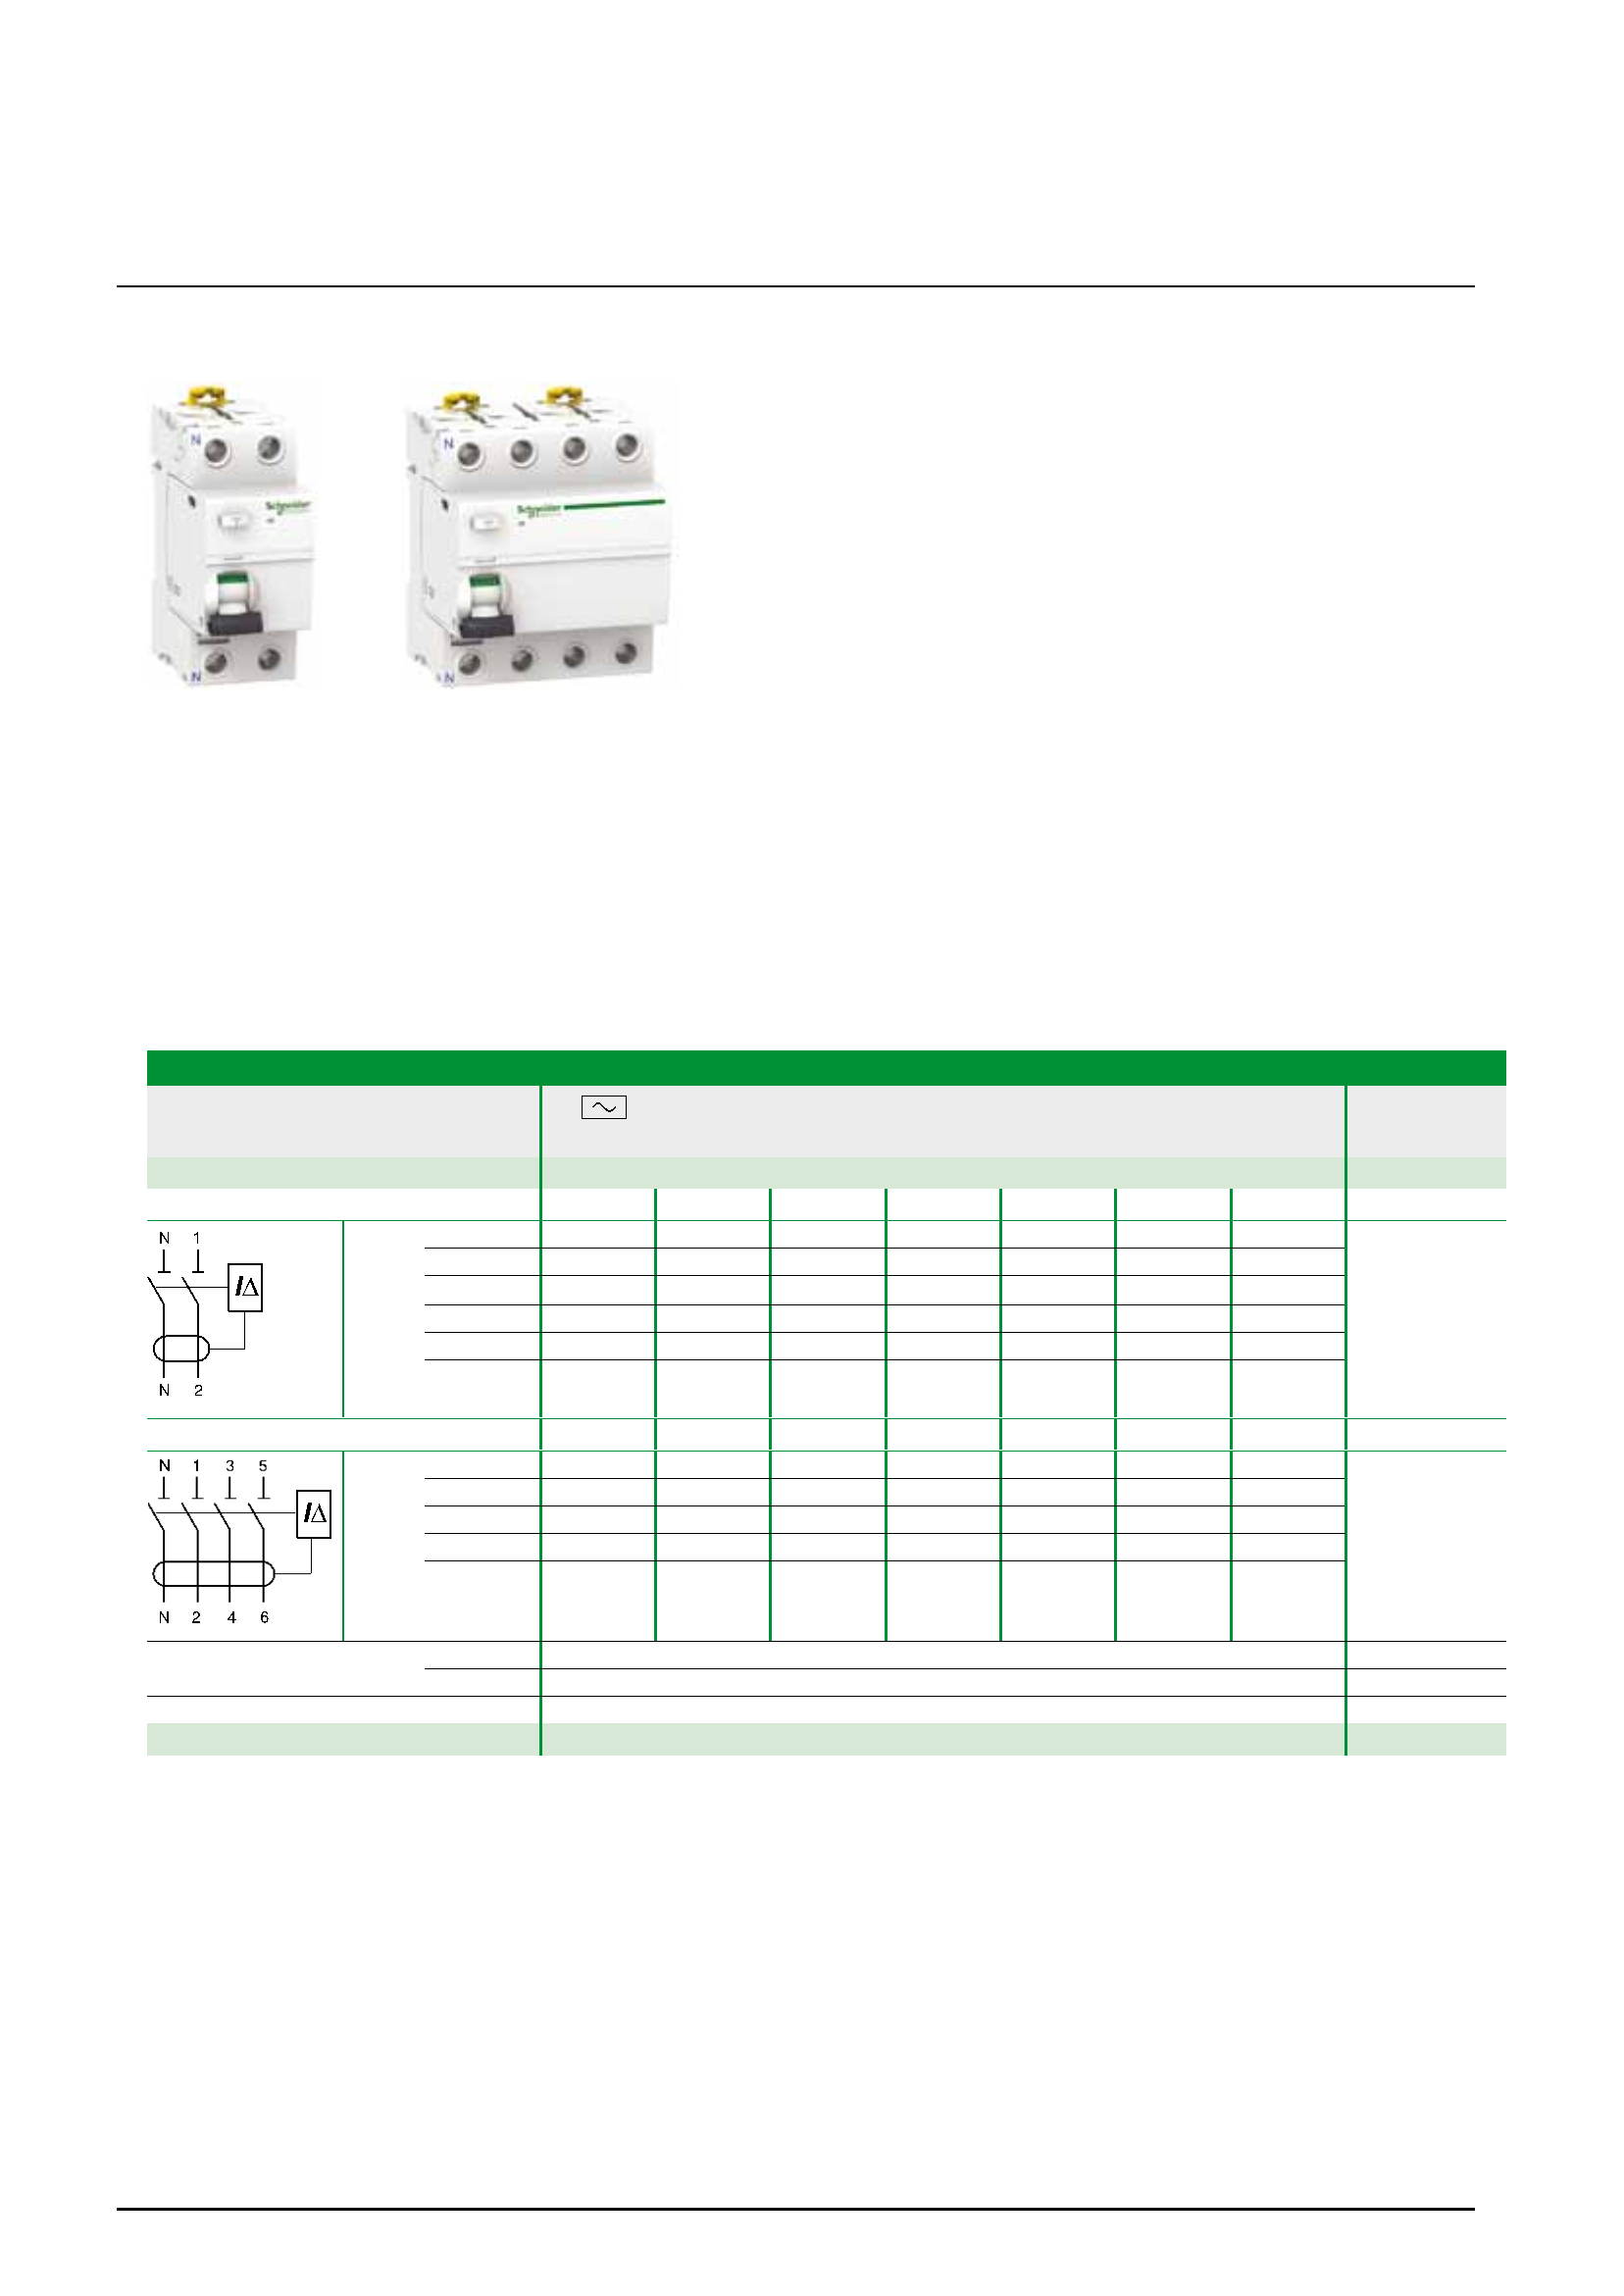 Acti9 Low Voltage The Efficiency You Deserve Circuit Breakers Gt Id Series Earth Leakage Breaker Protection